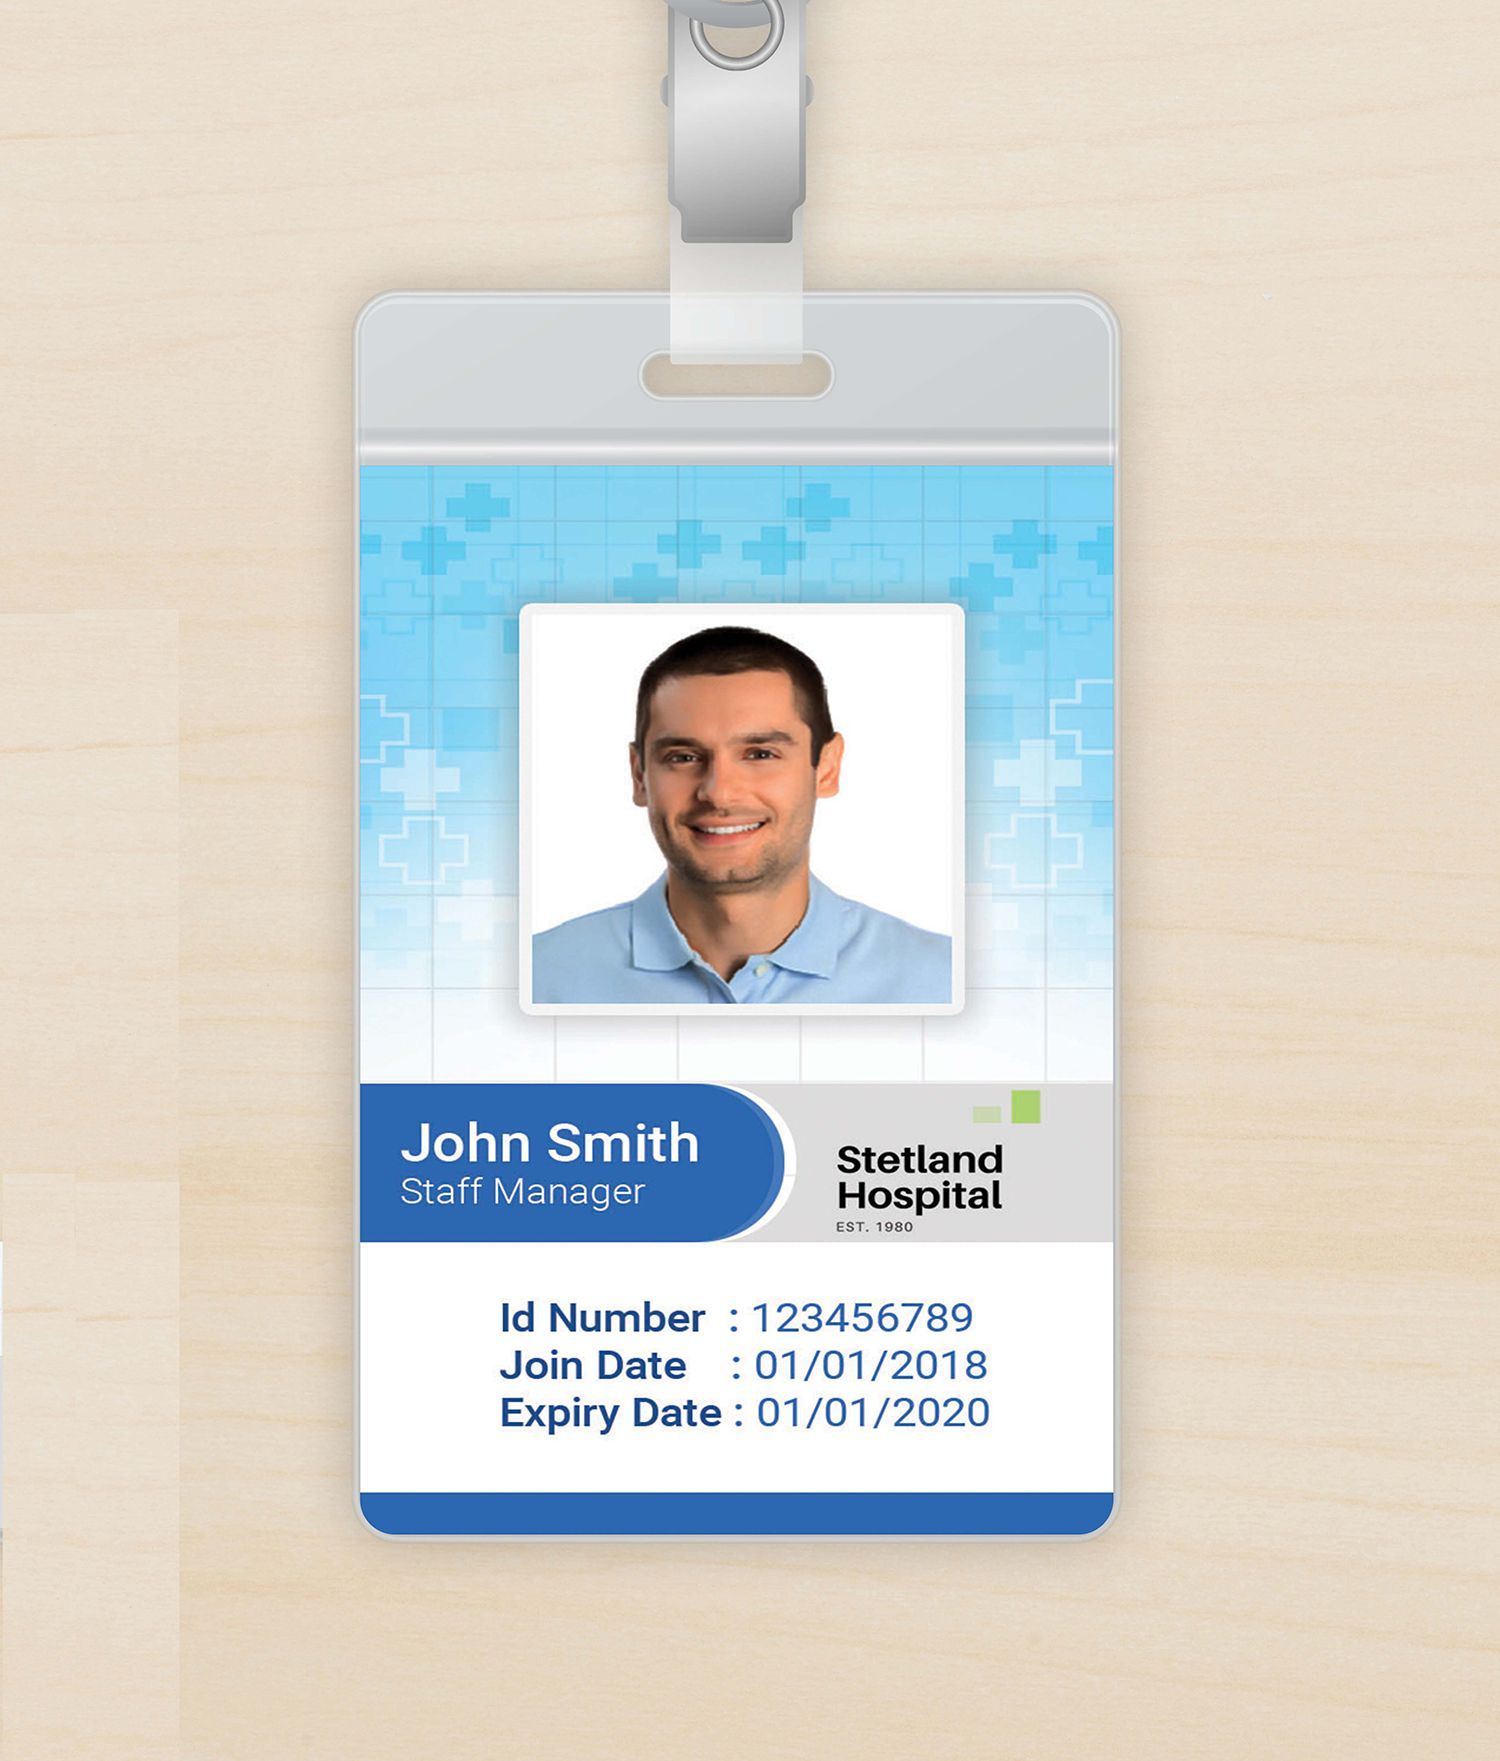 The Extraordinary Outstanding Id Badge Template Free Online Ideas Employee With Hospital Id Card T Id Card Template Employees Card Free Business Card Templates